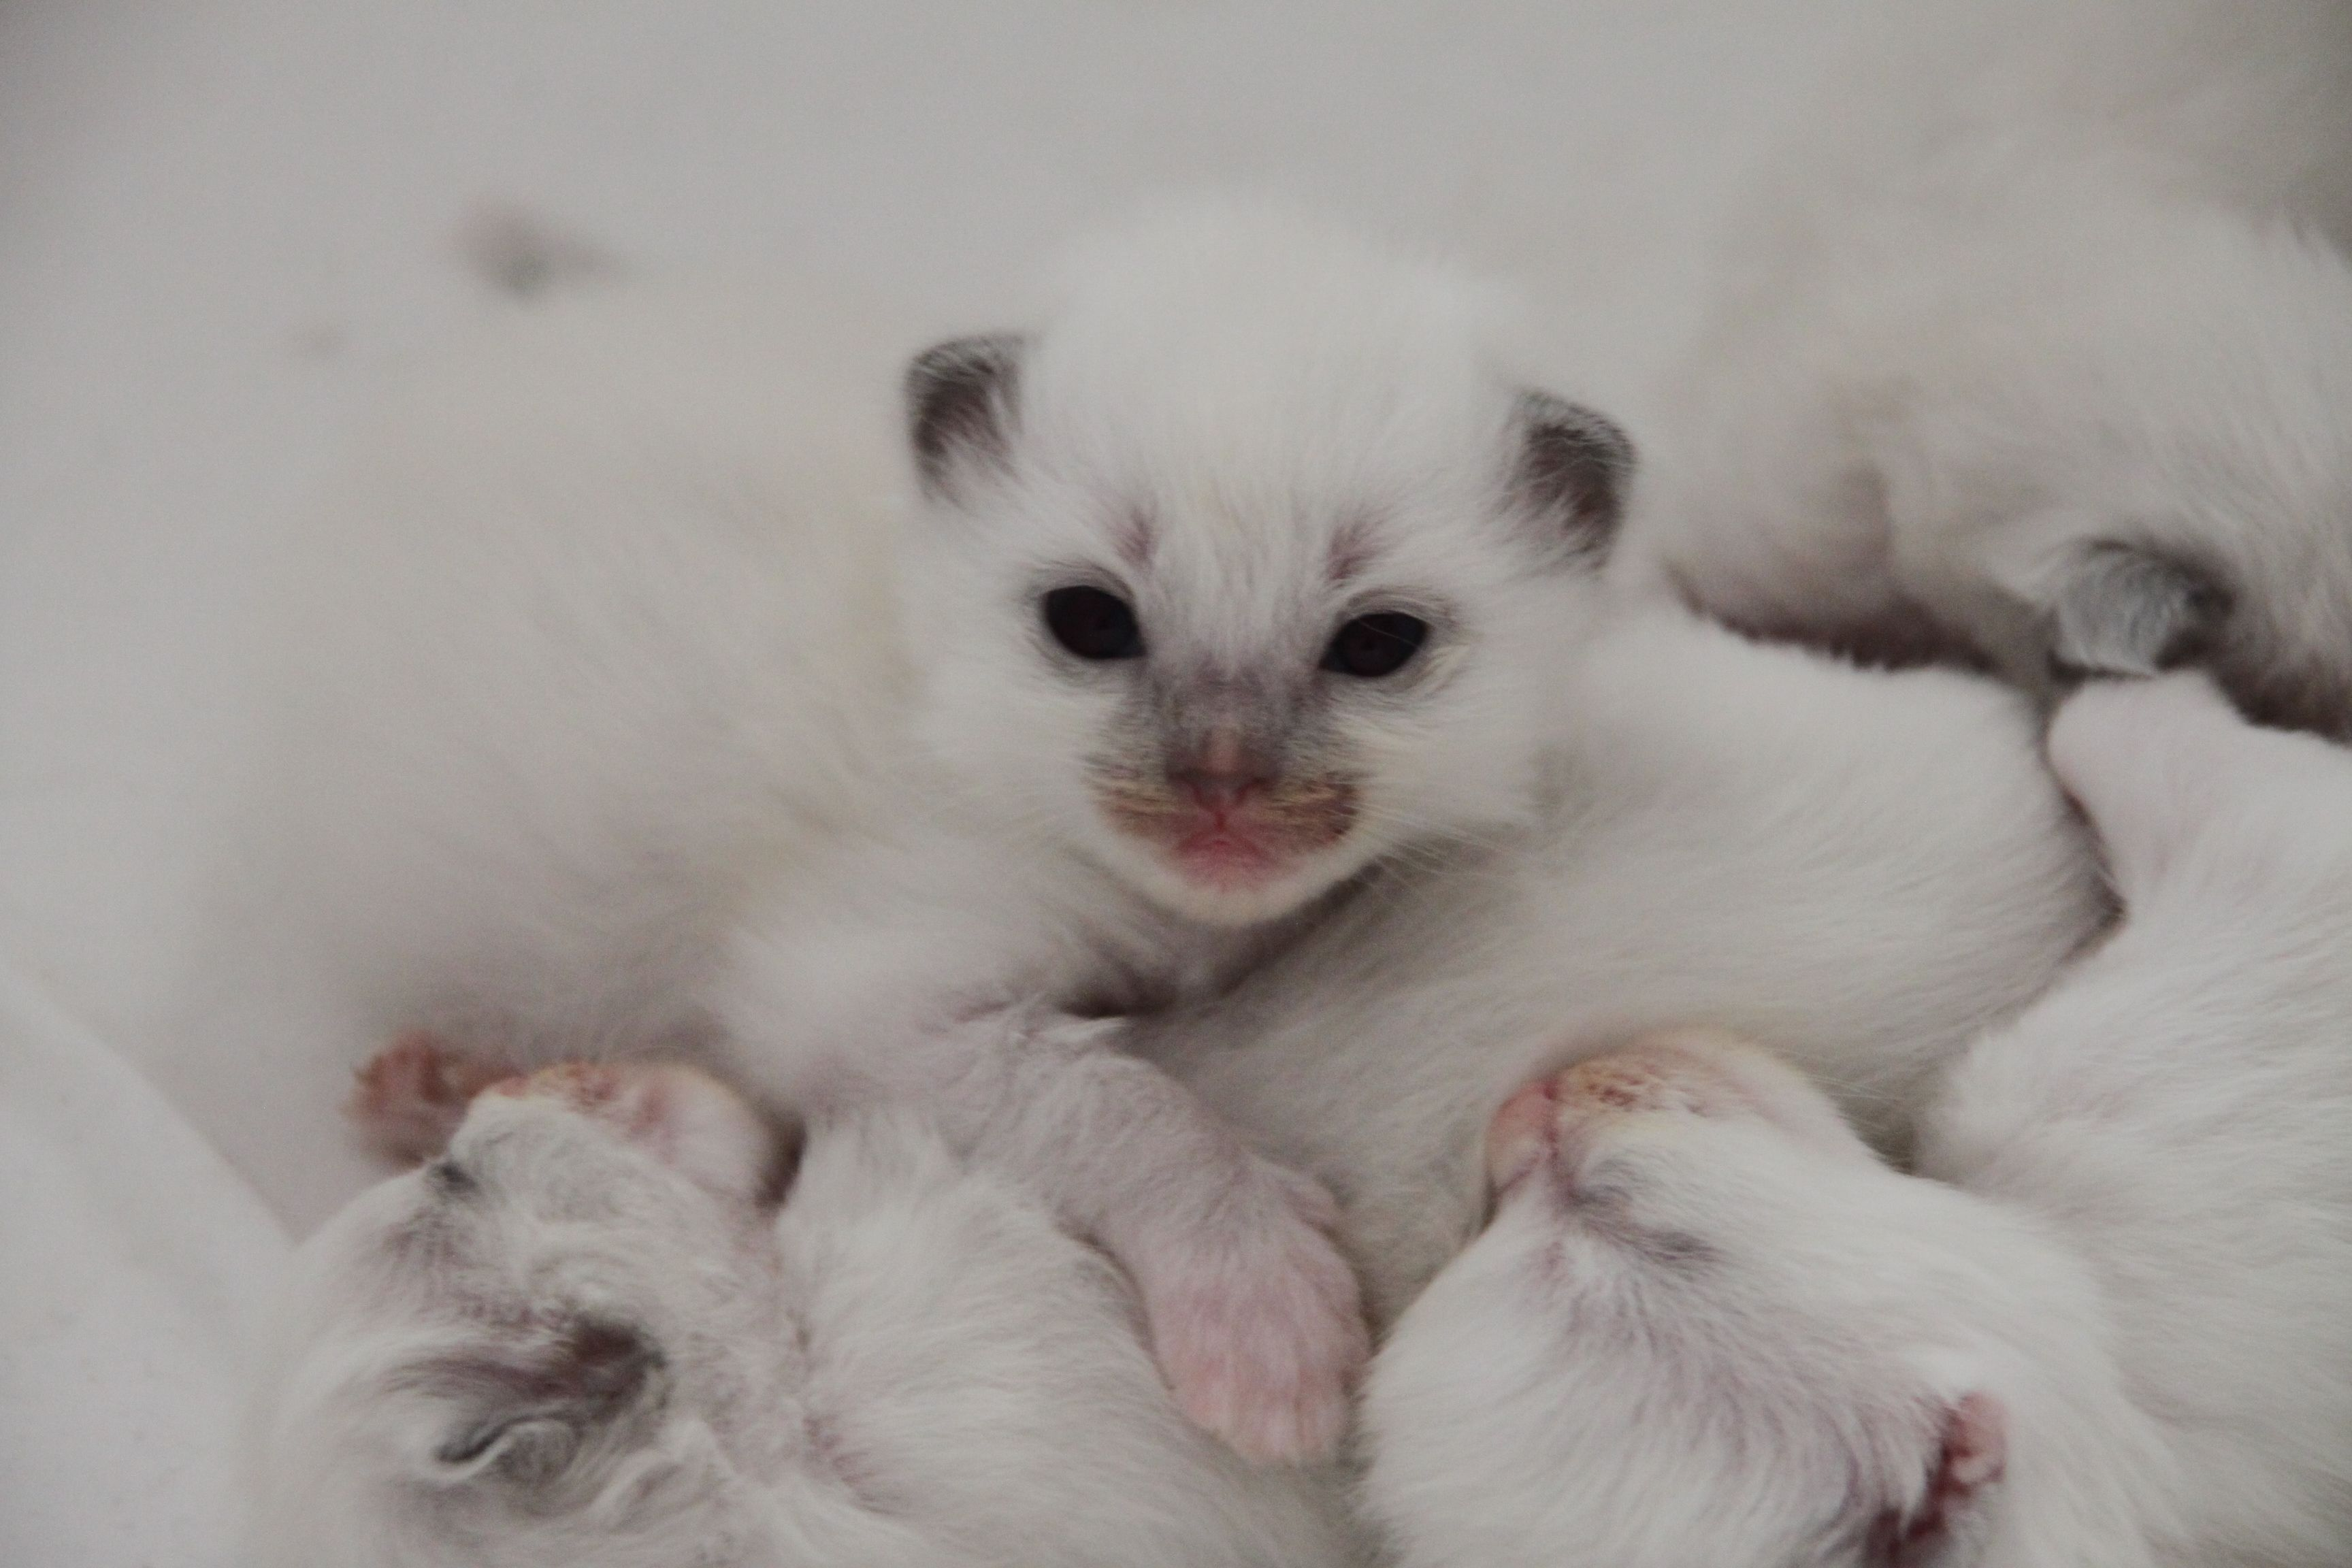 Ragdoll Kittens 2 Weeks Old 3 Www Ribbonsragdolls Com Ragdoll Kitten Cats Cats And Kittens